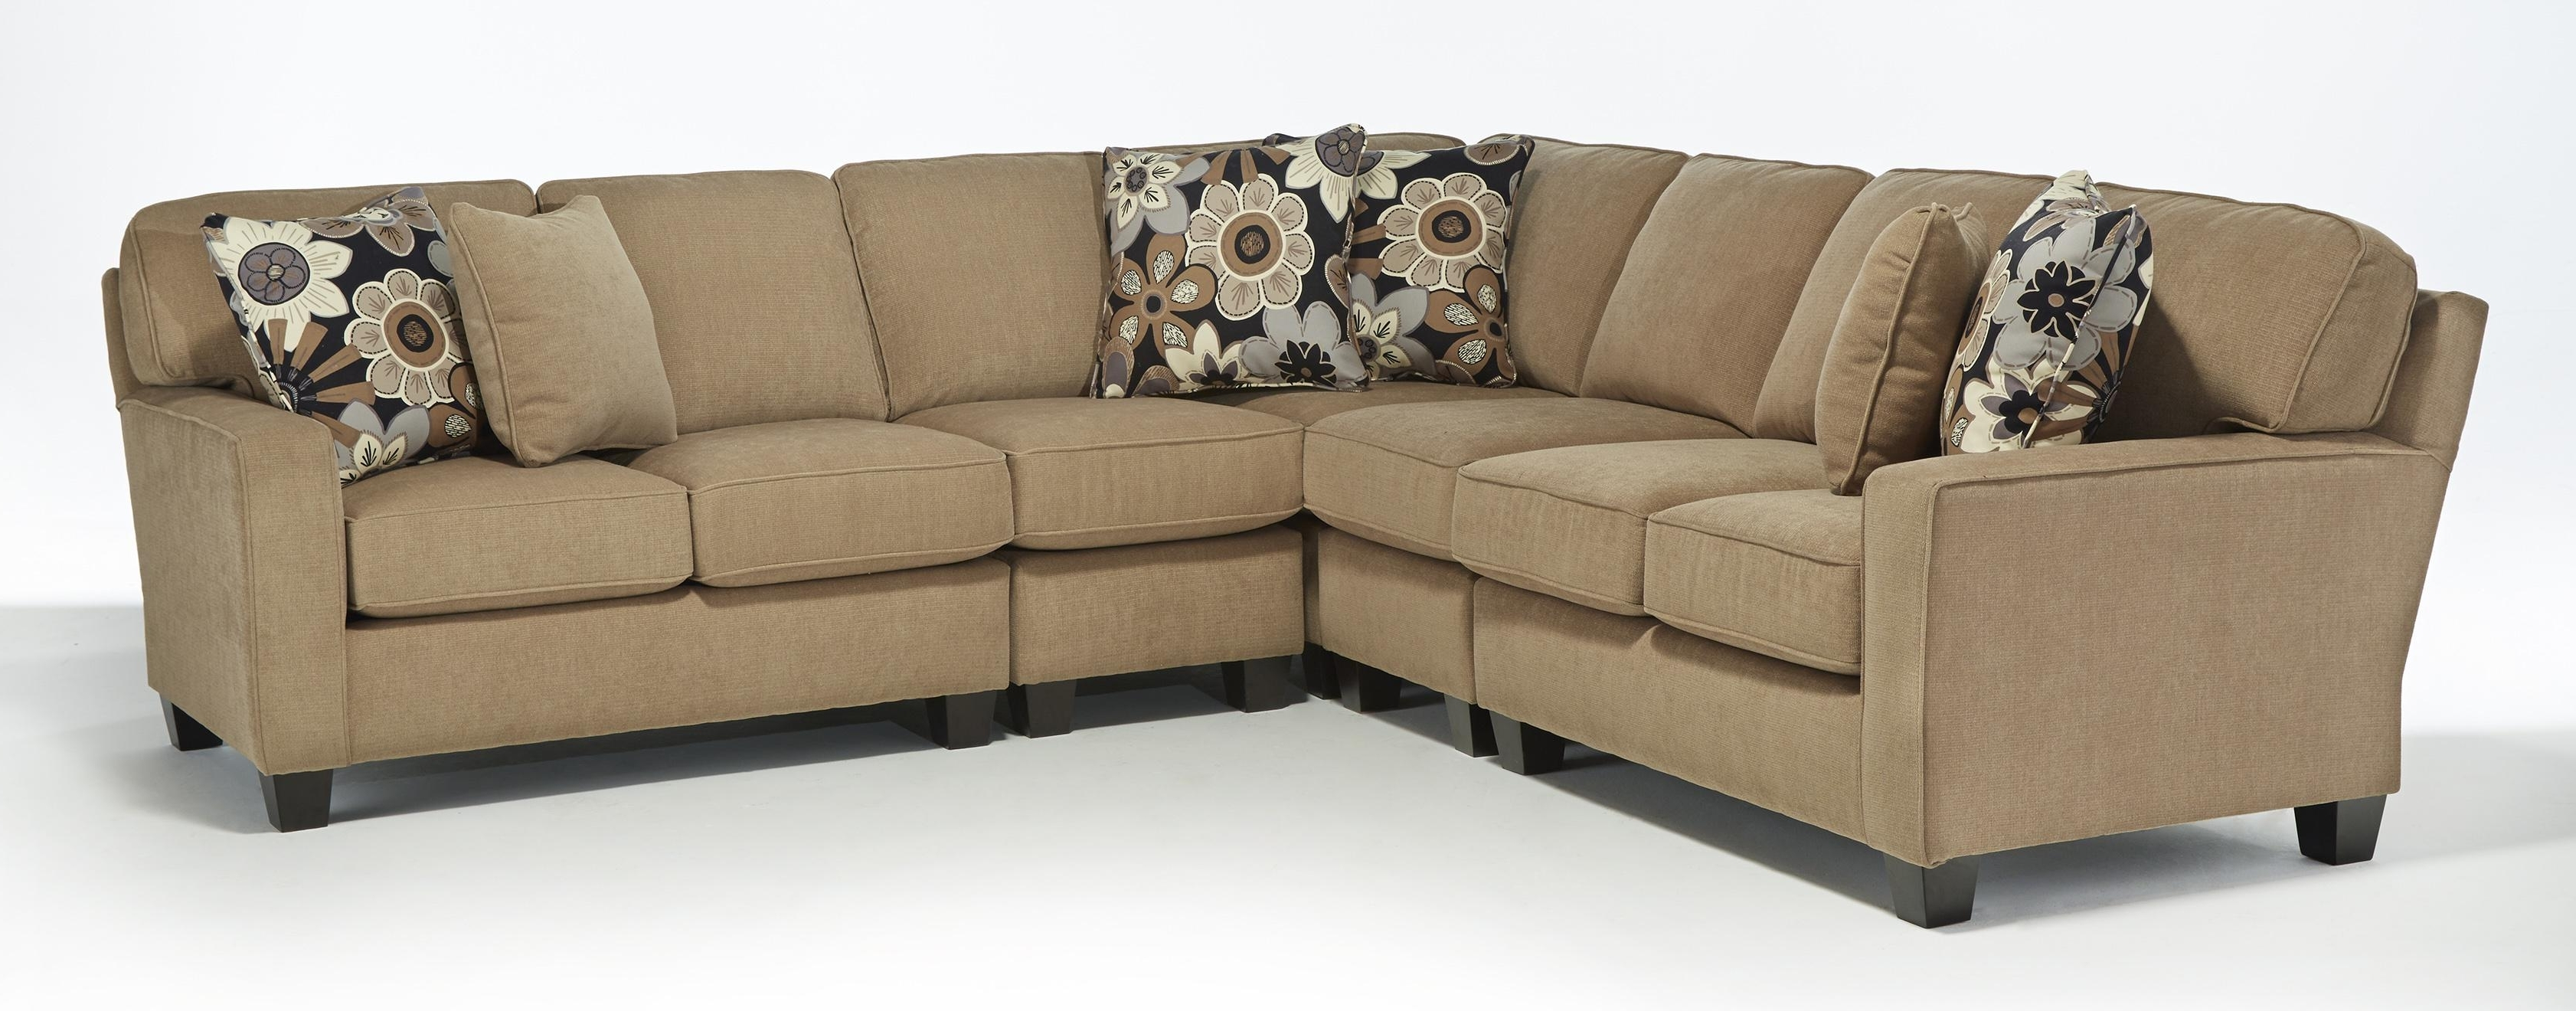 Five Piece Customizable Sectional Sofa With Track Arms And Wood Throughout Current Custom Made Sectional Sofas (View 16 of 20)